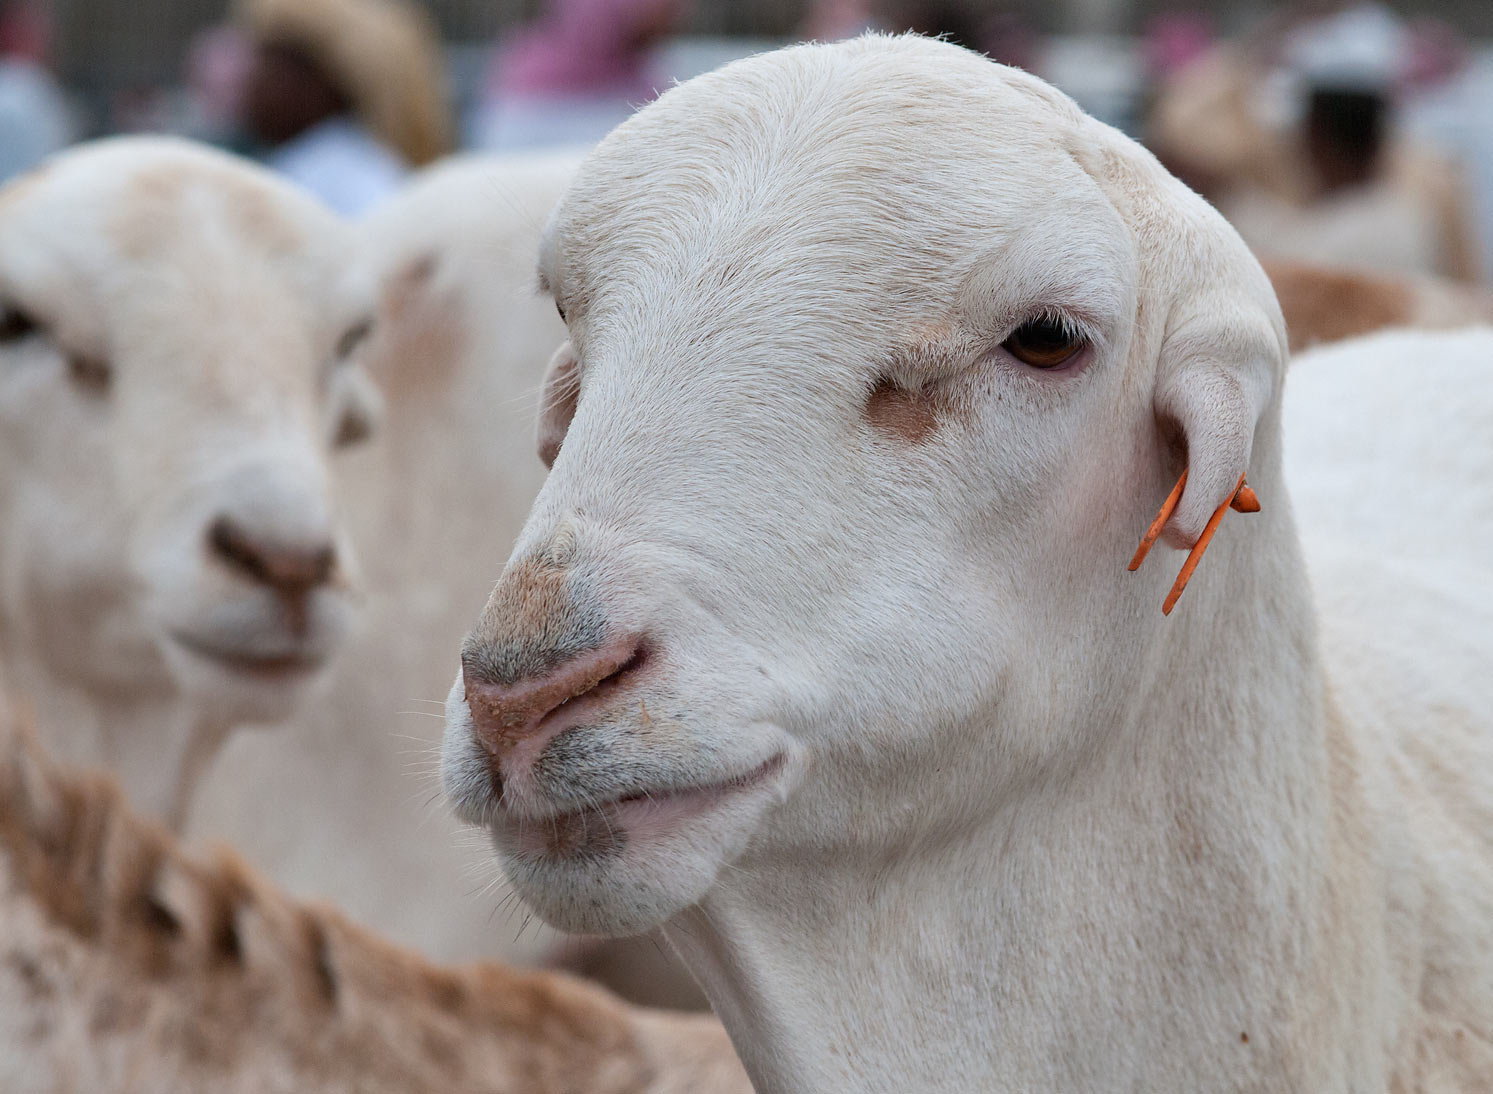 White goats in Sheep Market, Wholesale Markets area. Doha, Qatar